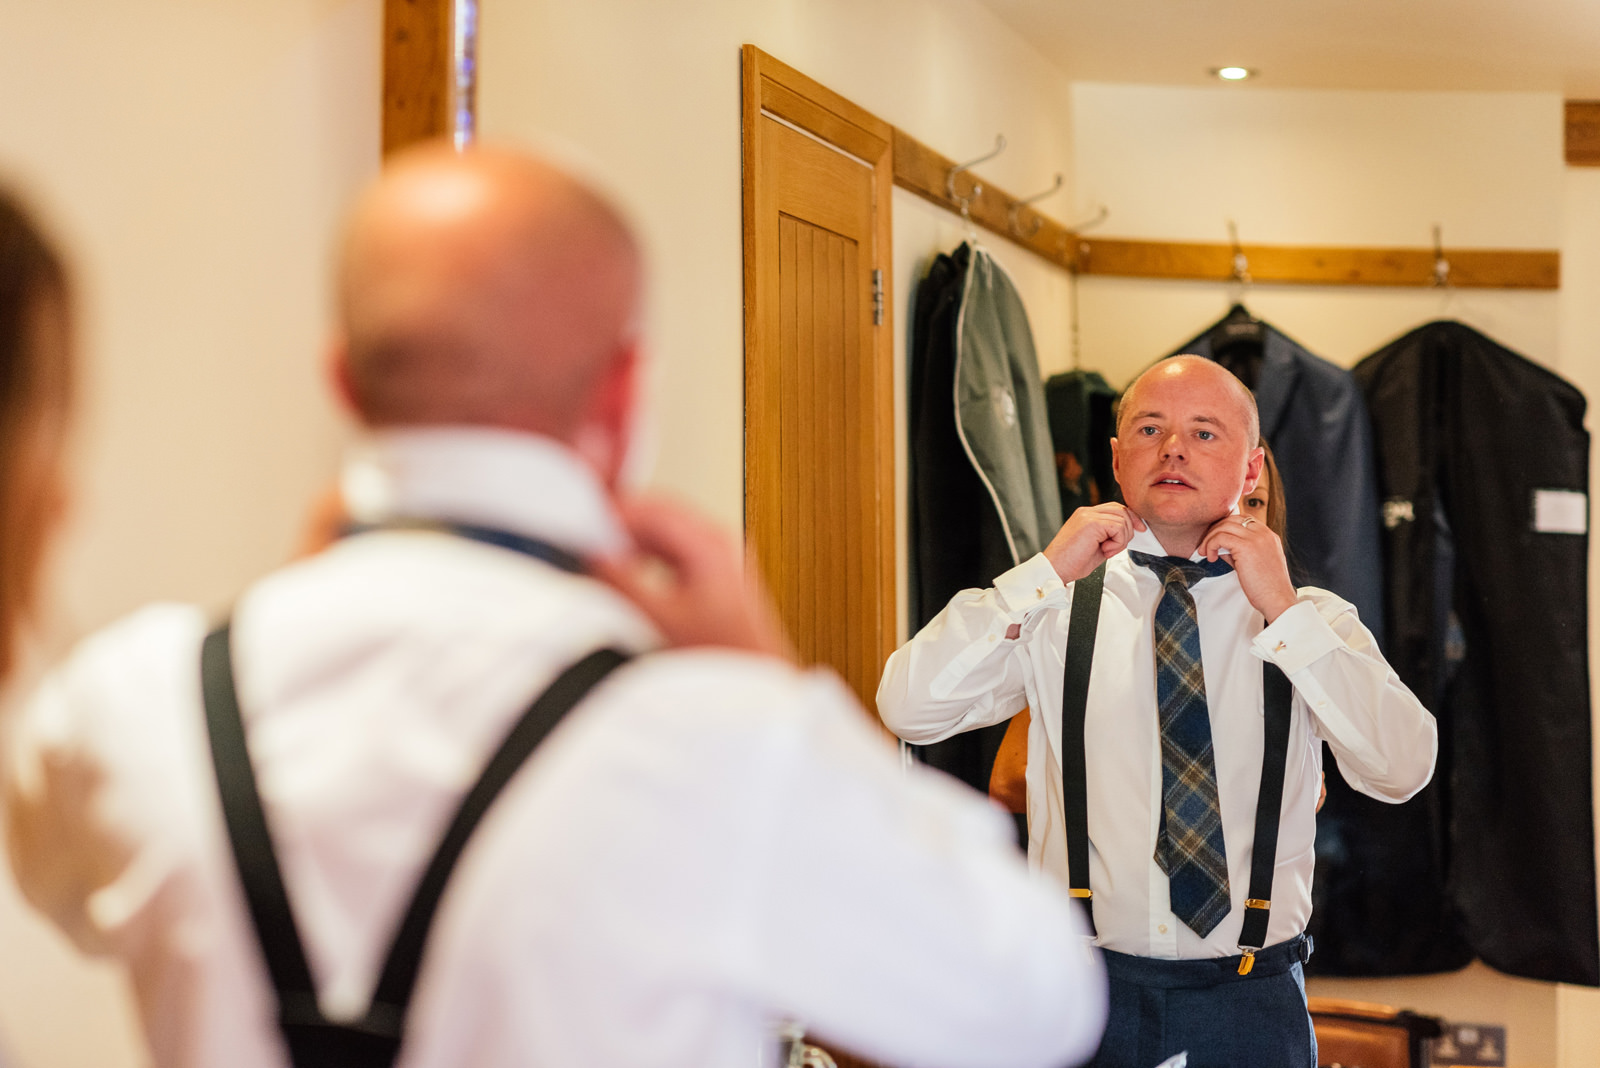 Groom getting ready on wedding day